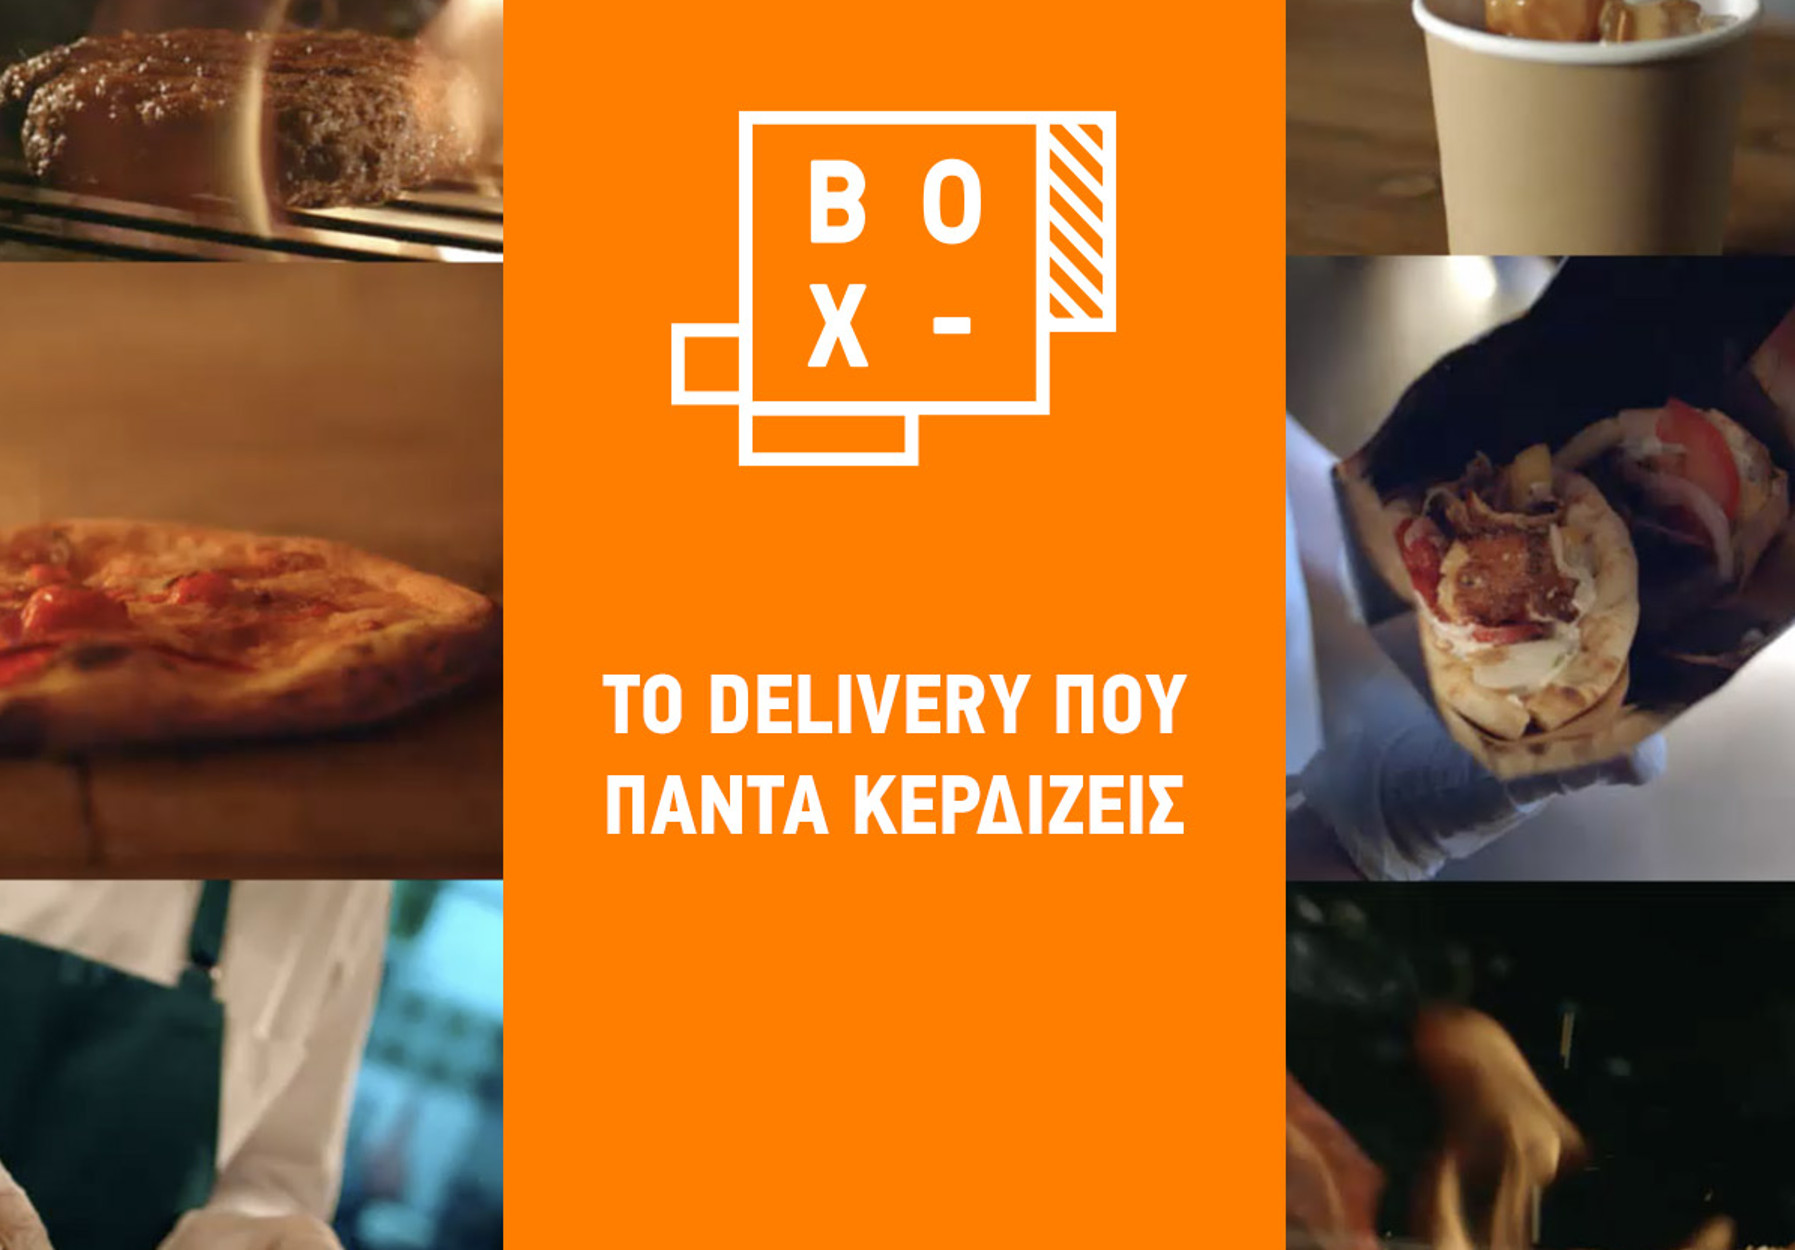 BOX: Σε τροχιά ανάπτυξης οι υπηρεσίες delivery